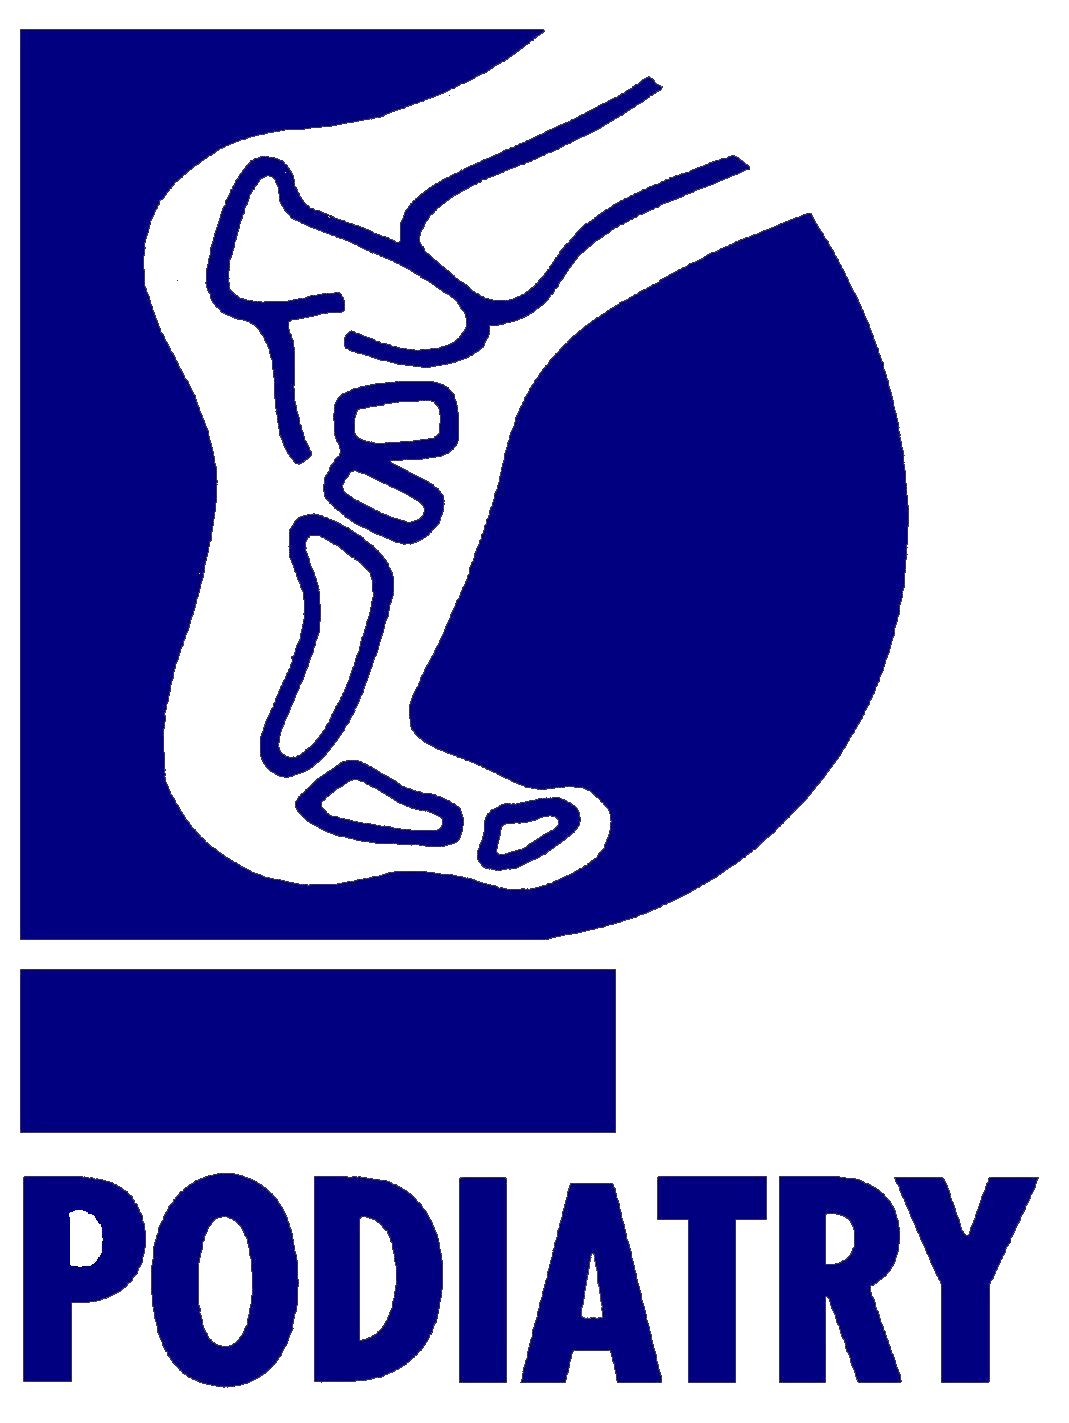 podiatrist podiatry Camberwell